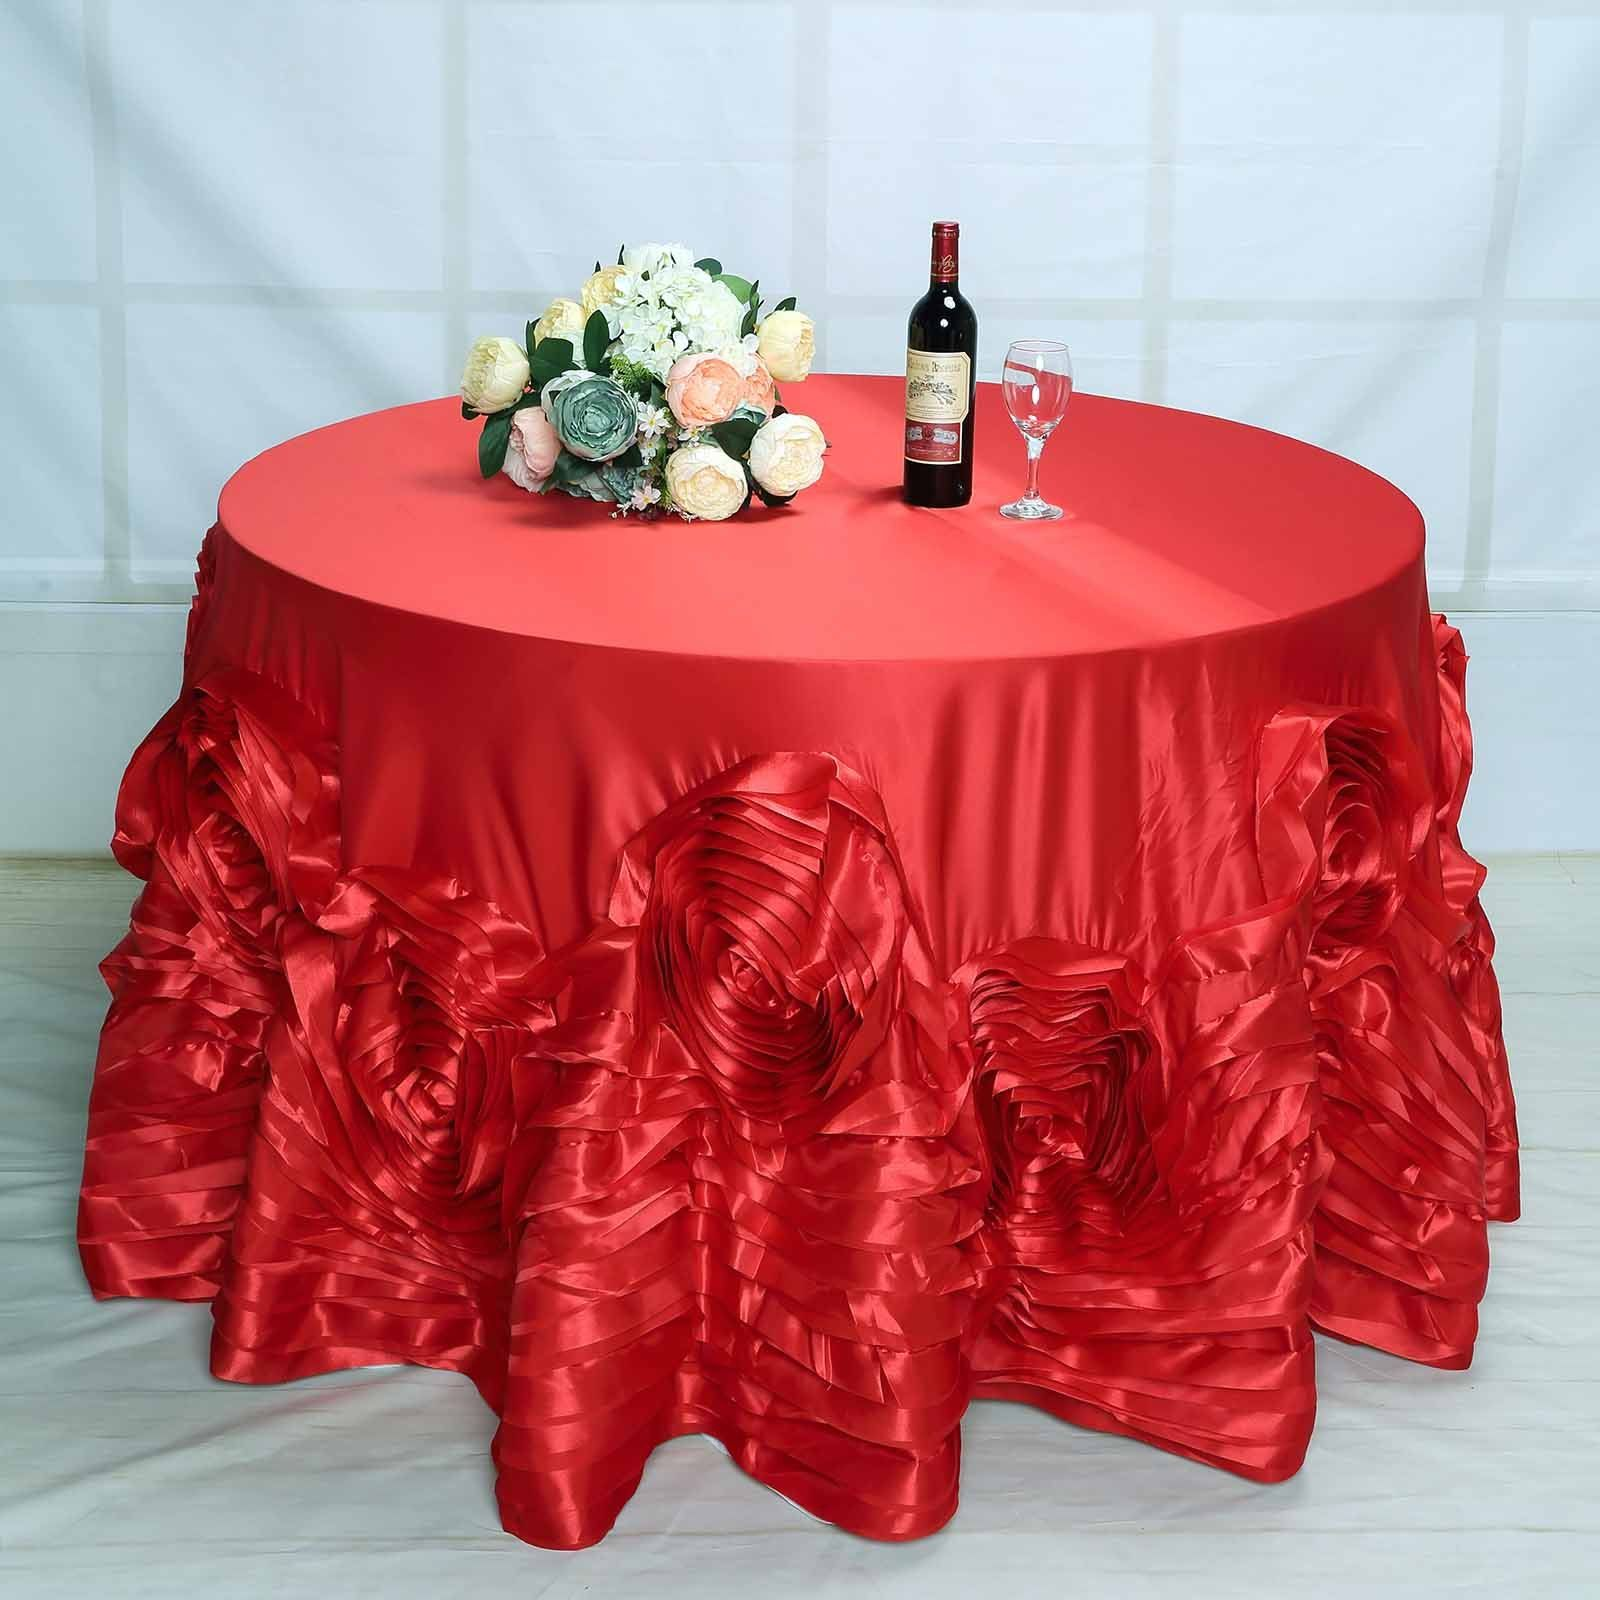 120 Red Large Rosette Round Lamour Satin Tablecloth Table Cloth